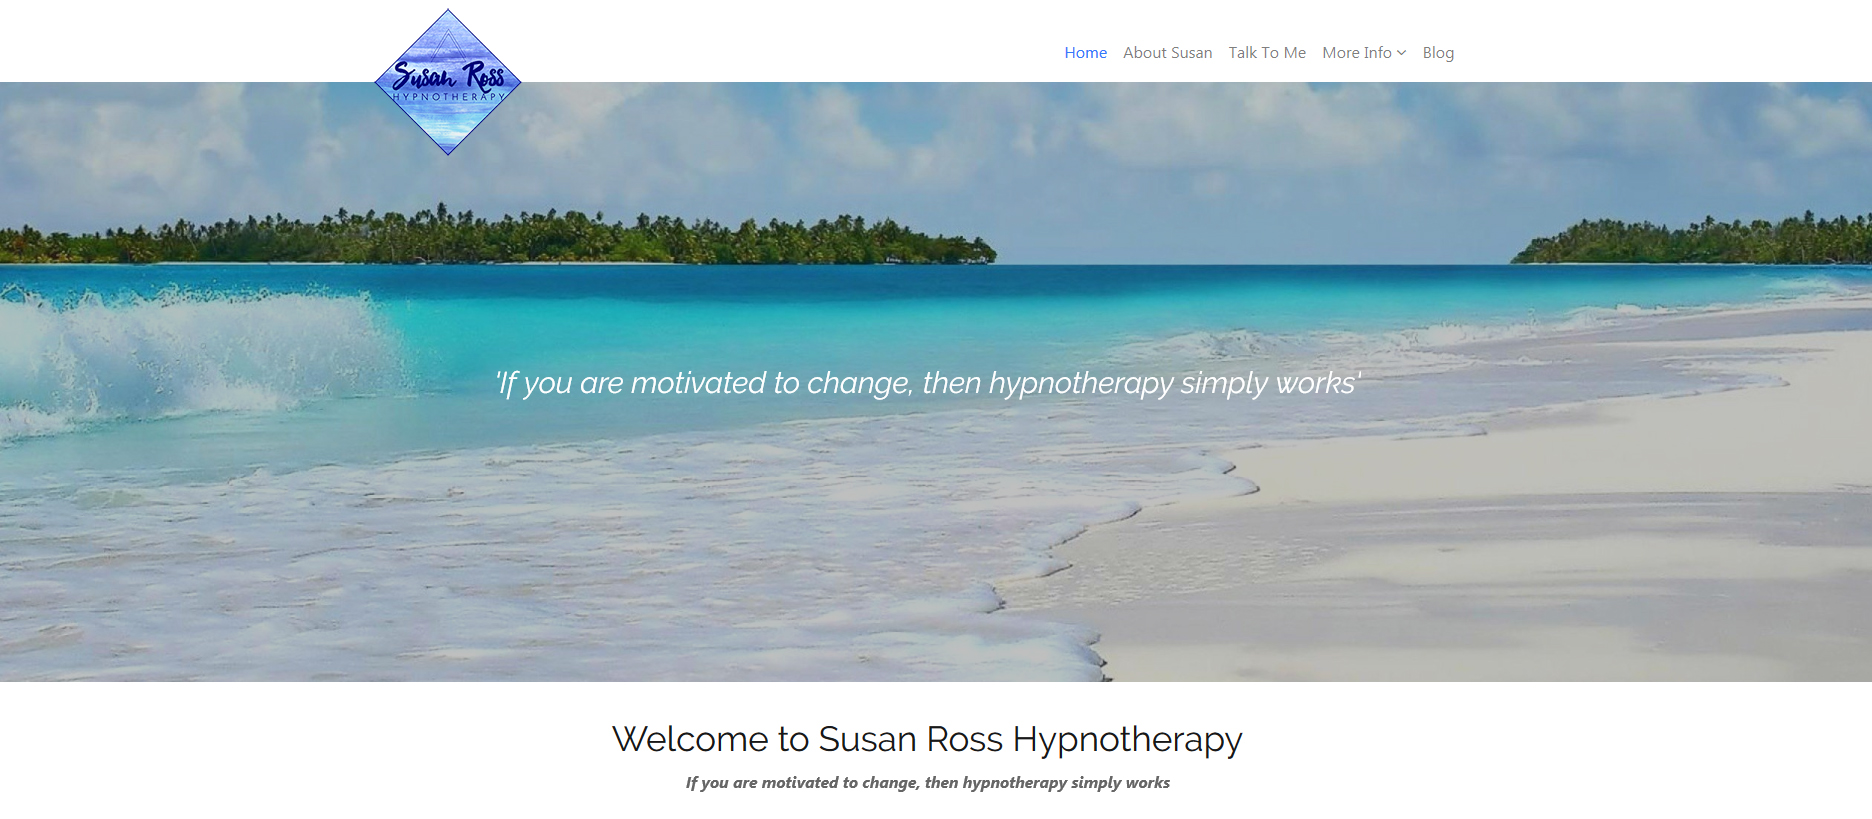 Susan Ross Hypnotherapy